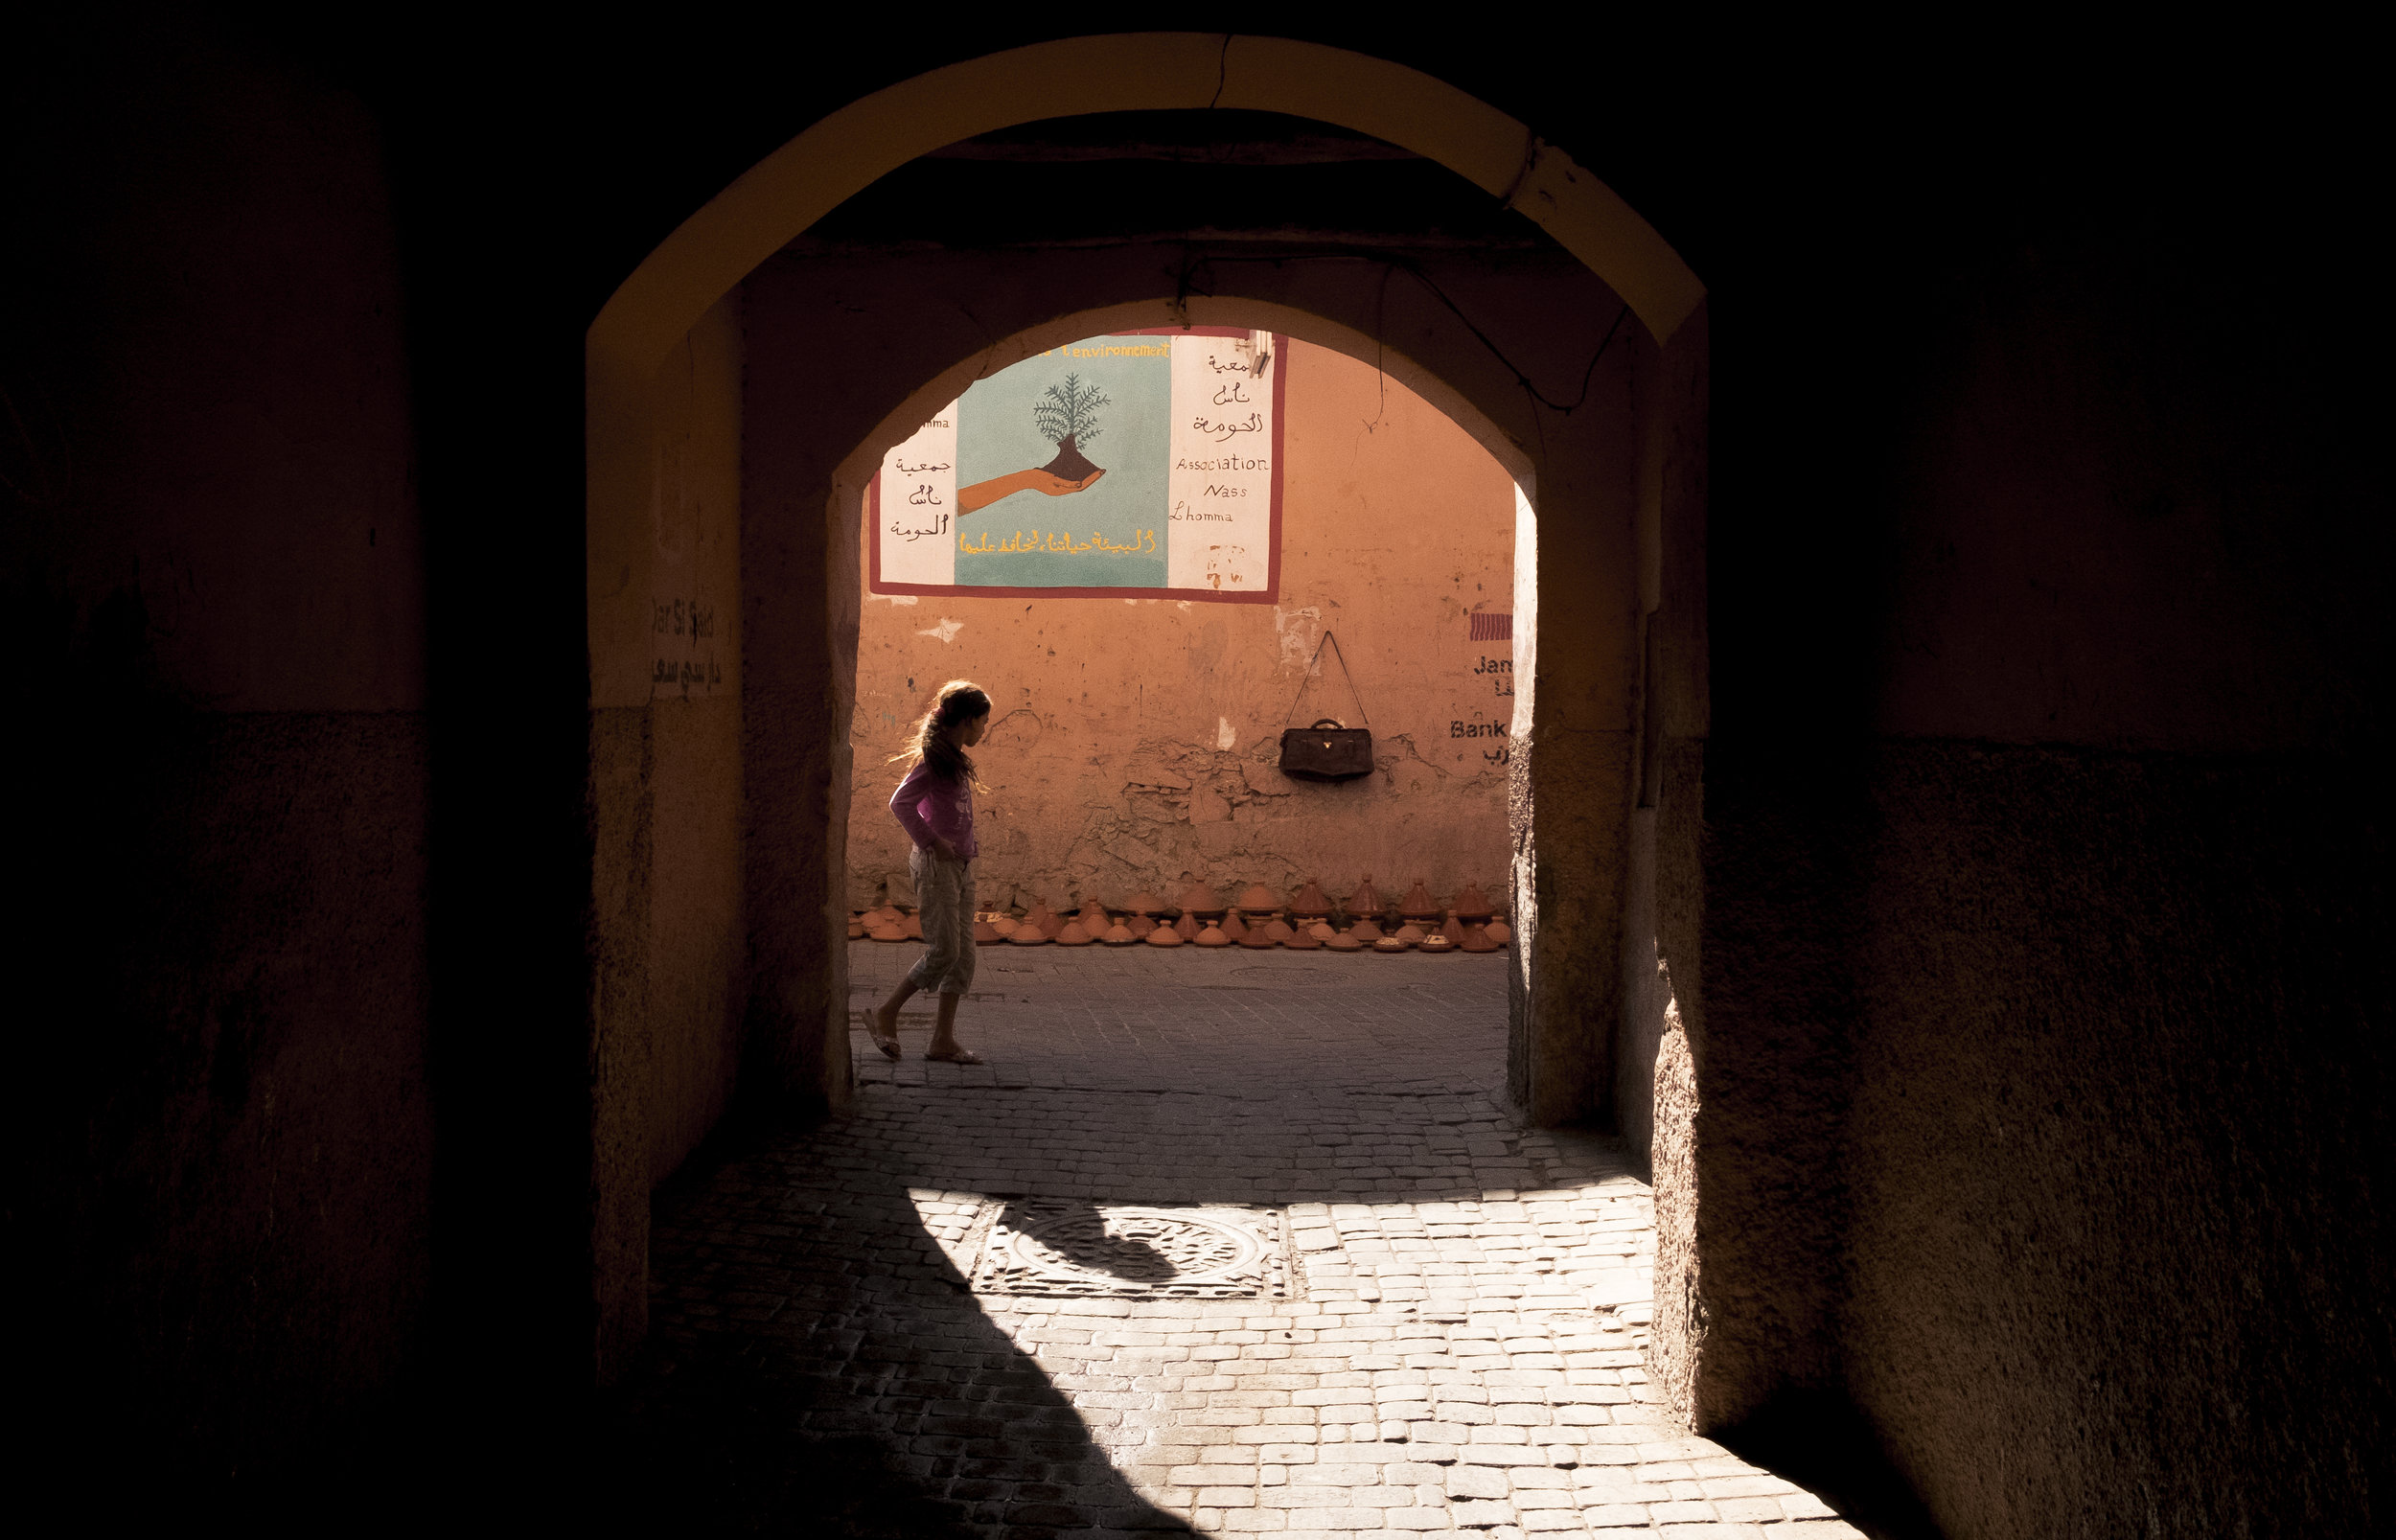 Tunnel Vision - studying tunnel lights and people in Marrakesh